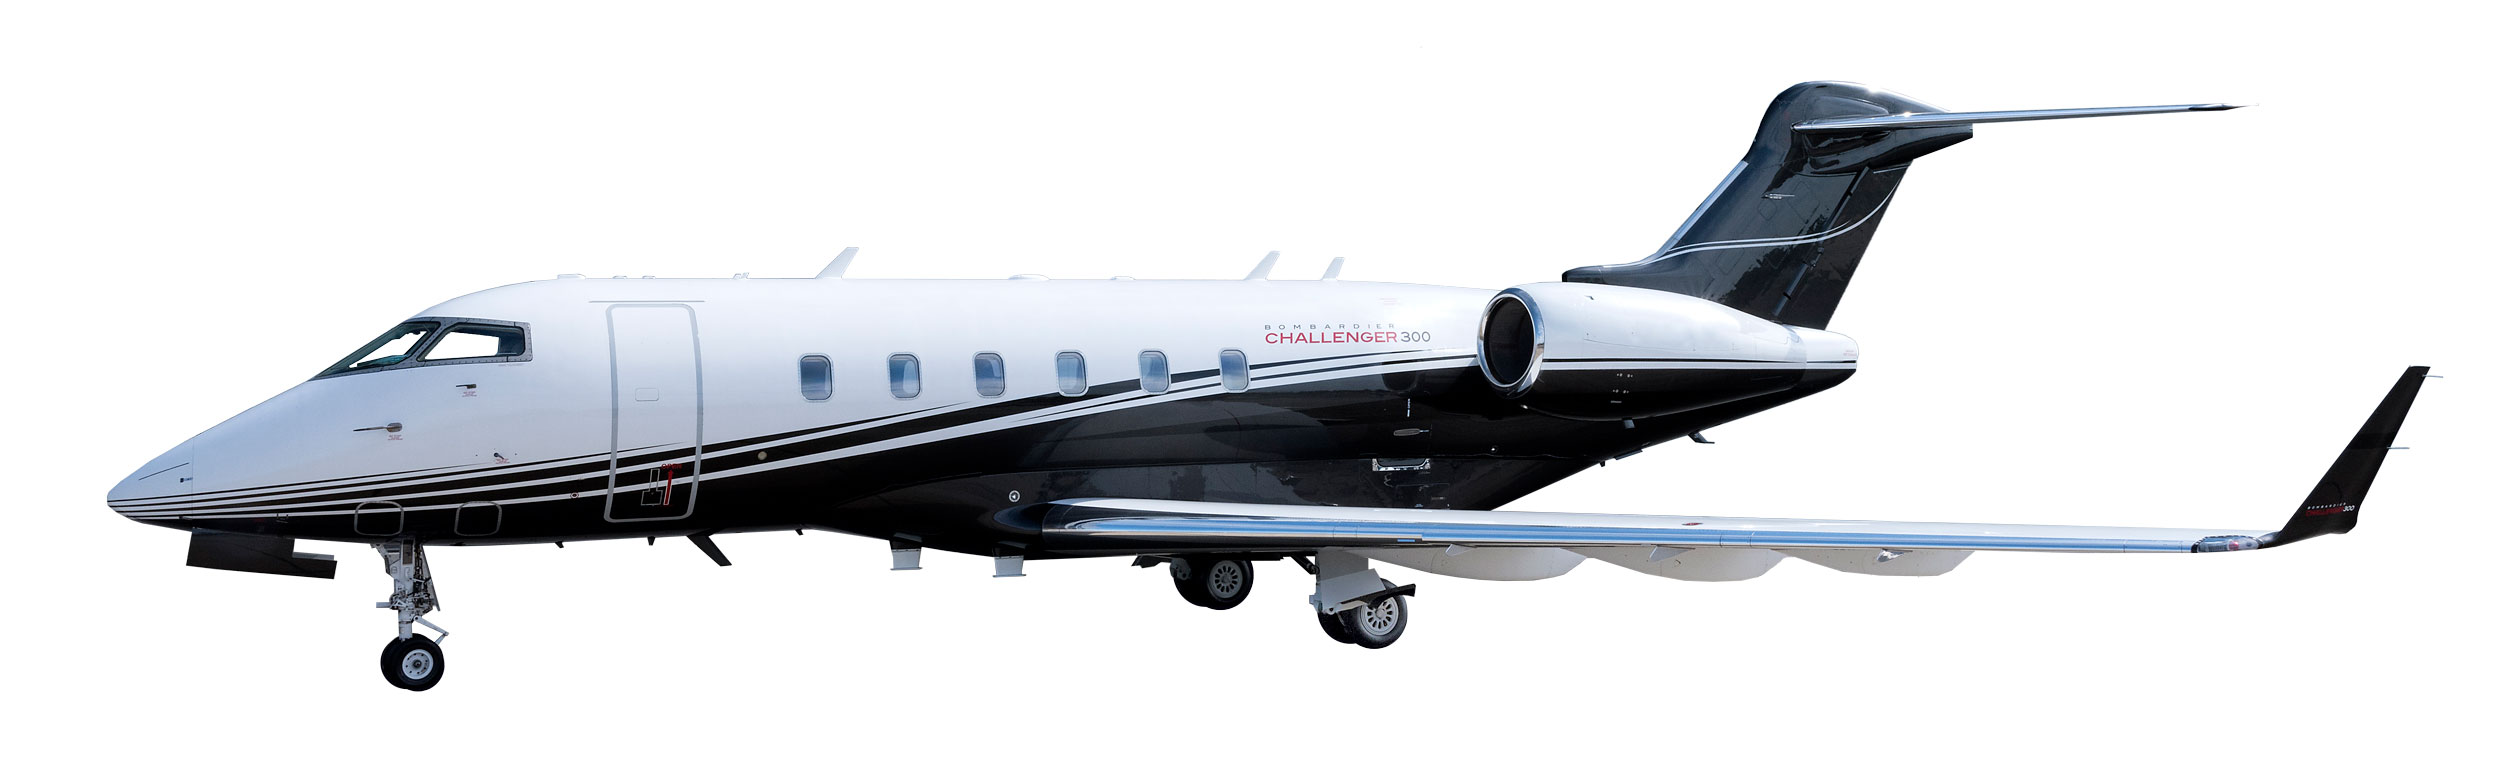 Bombardier Challenger 300 For Charter Aircraft Type Latitude 33 Aviation Exterior